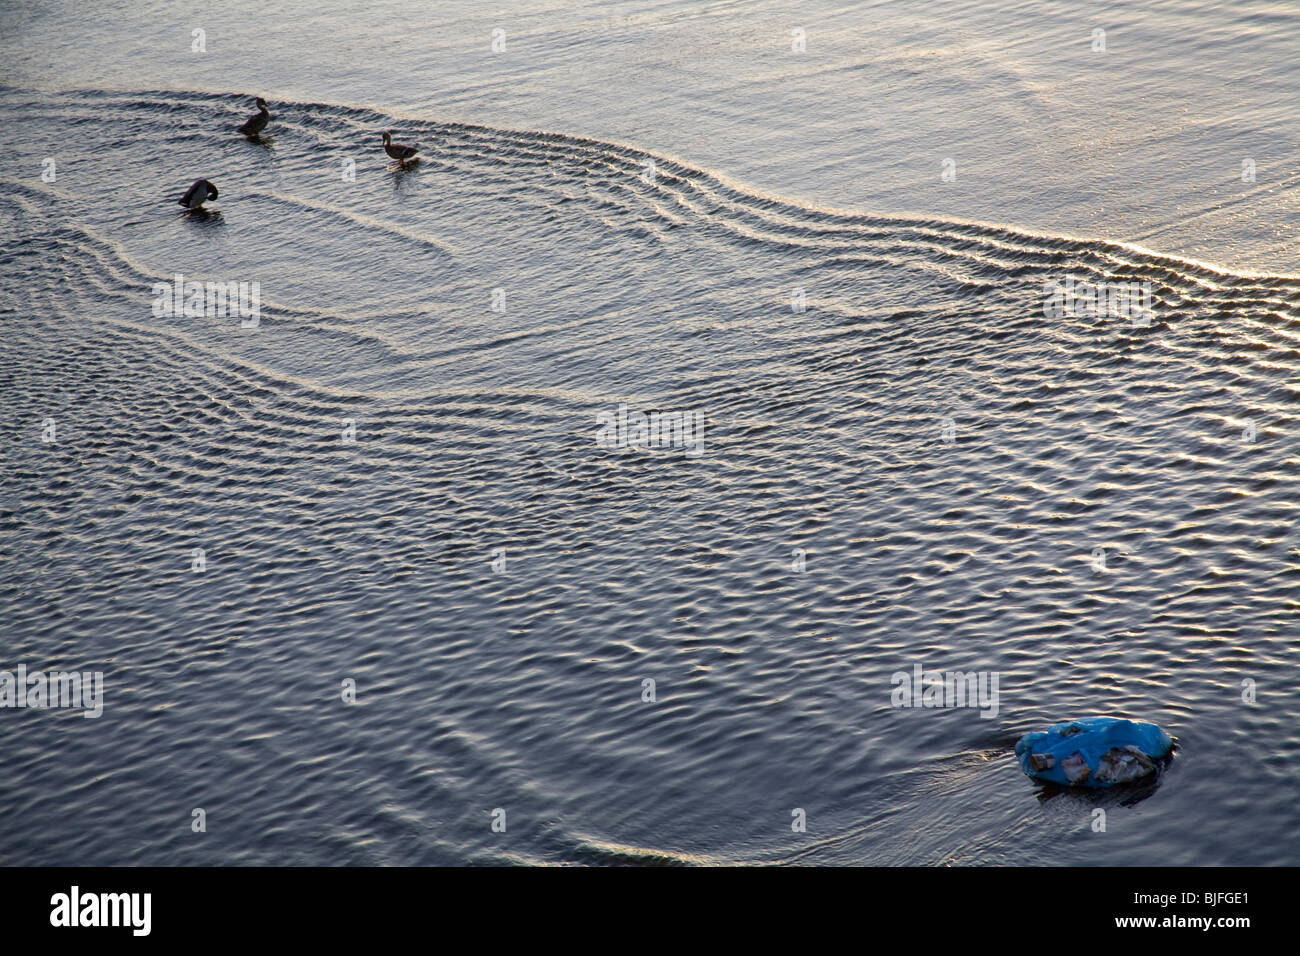 Plastic trash and ducks in Los Angeles River, Bell, Los Angeles, California, USA - Stock Image